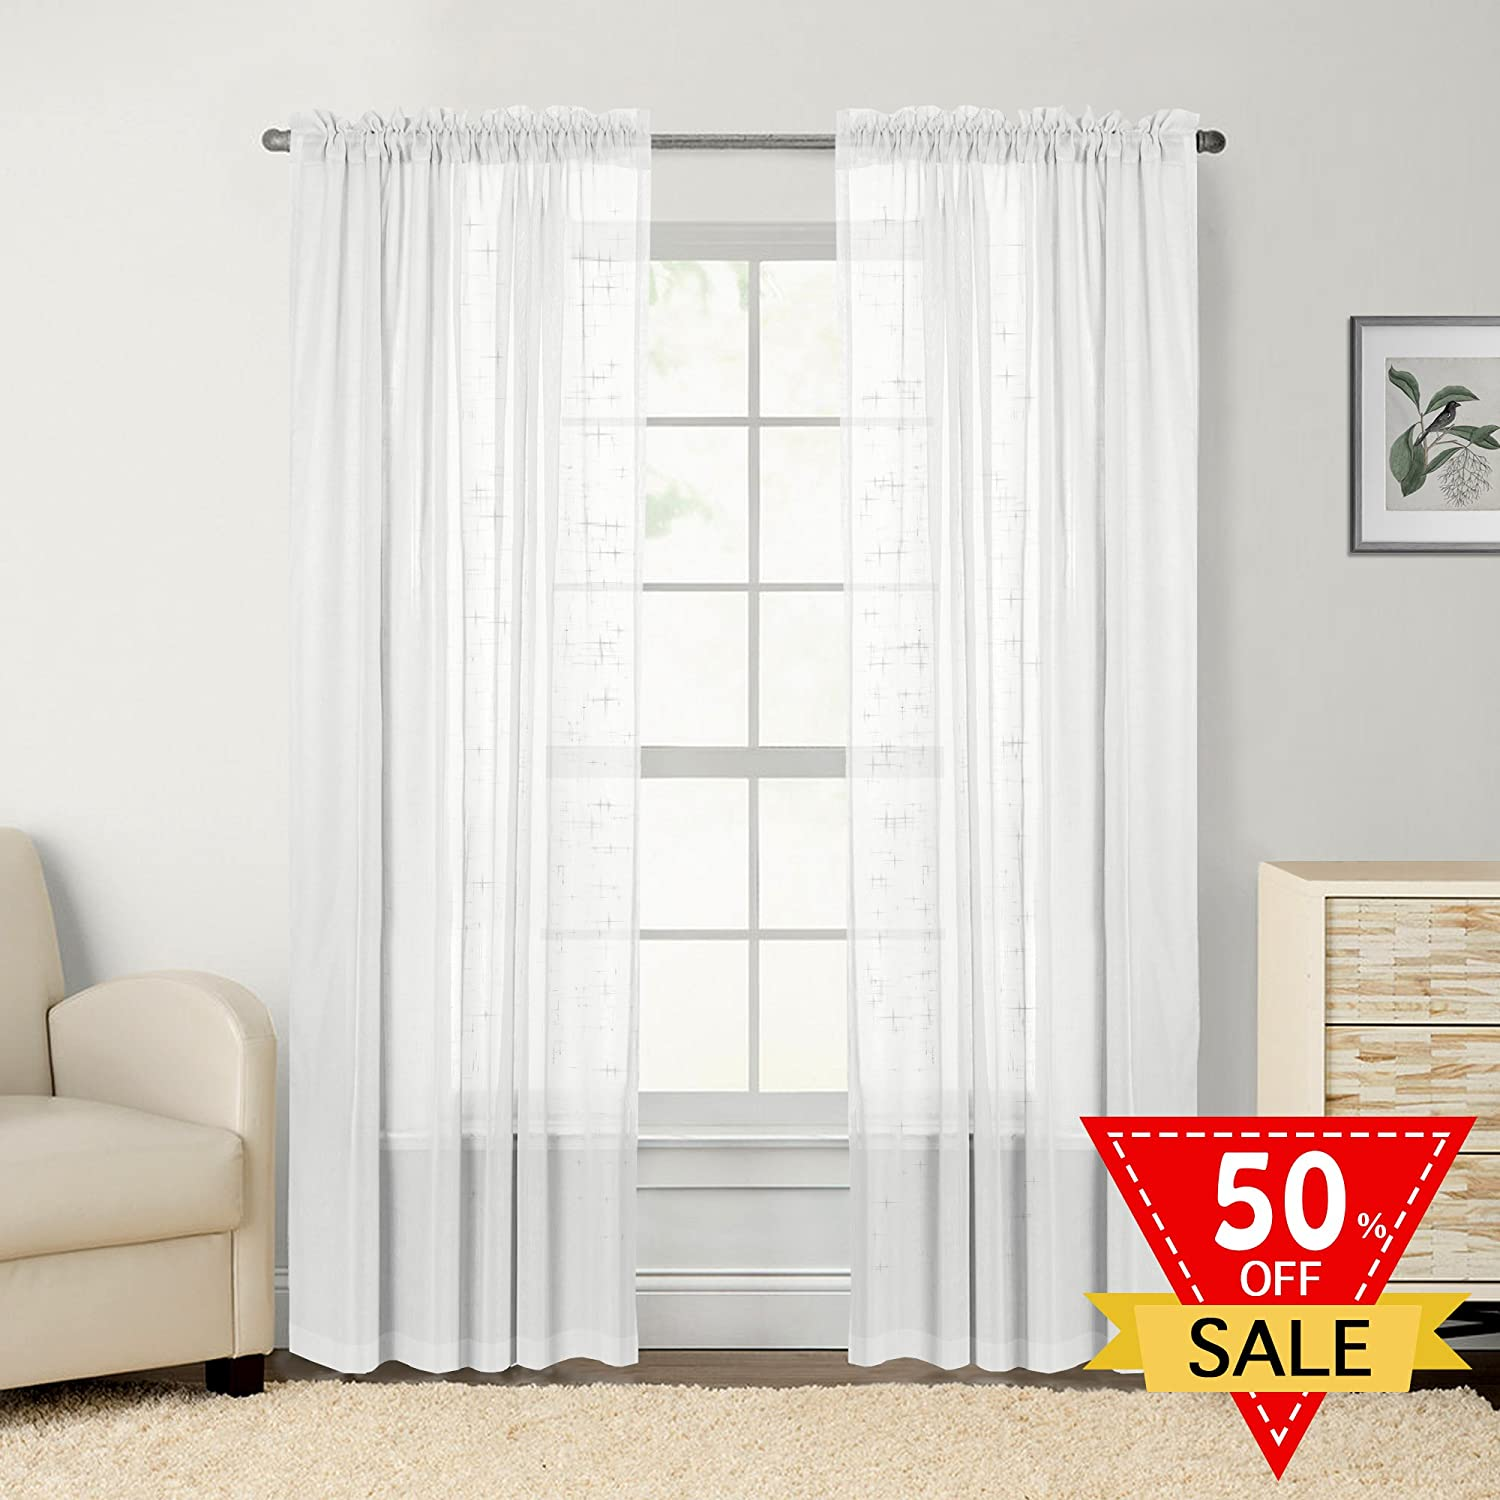 FlamingoP Faux Linen Sheer Curtains / Drapes for Bedroom Window